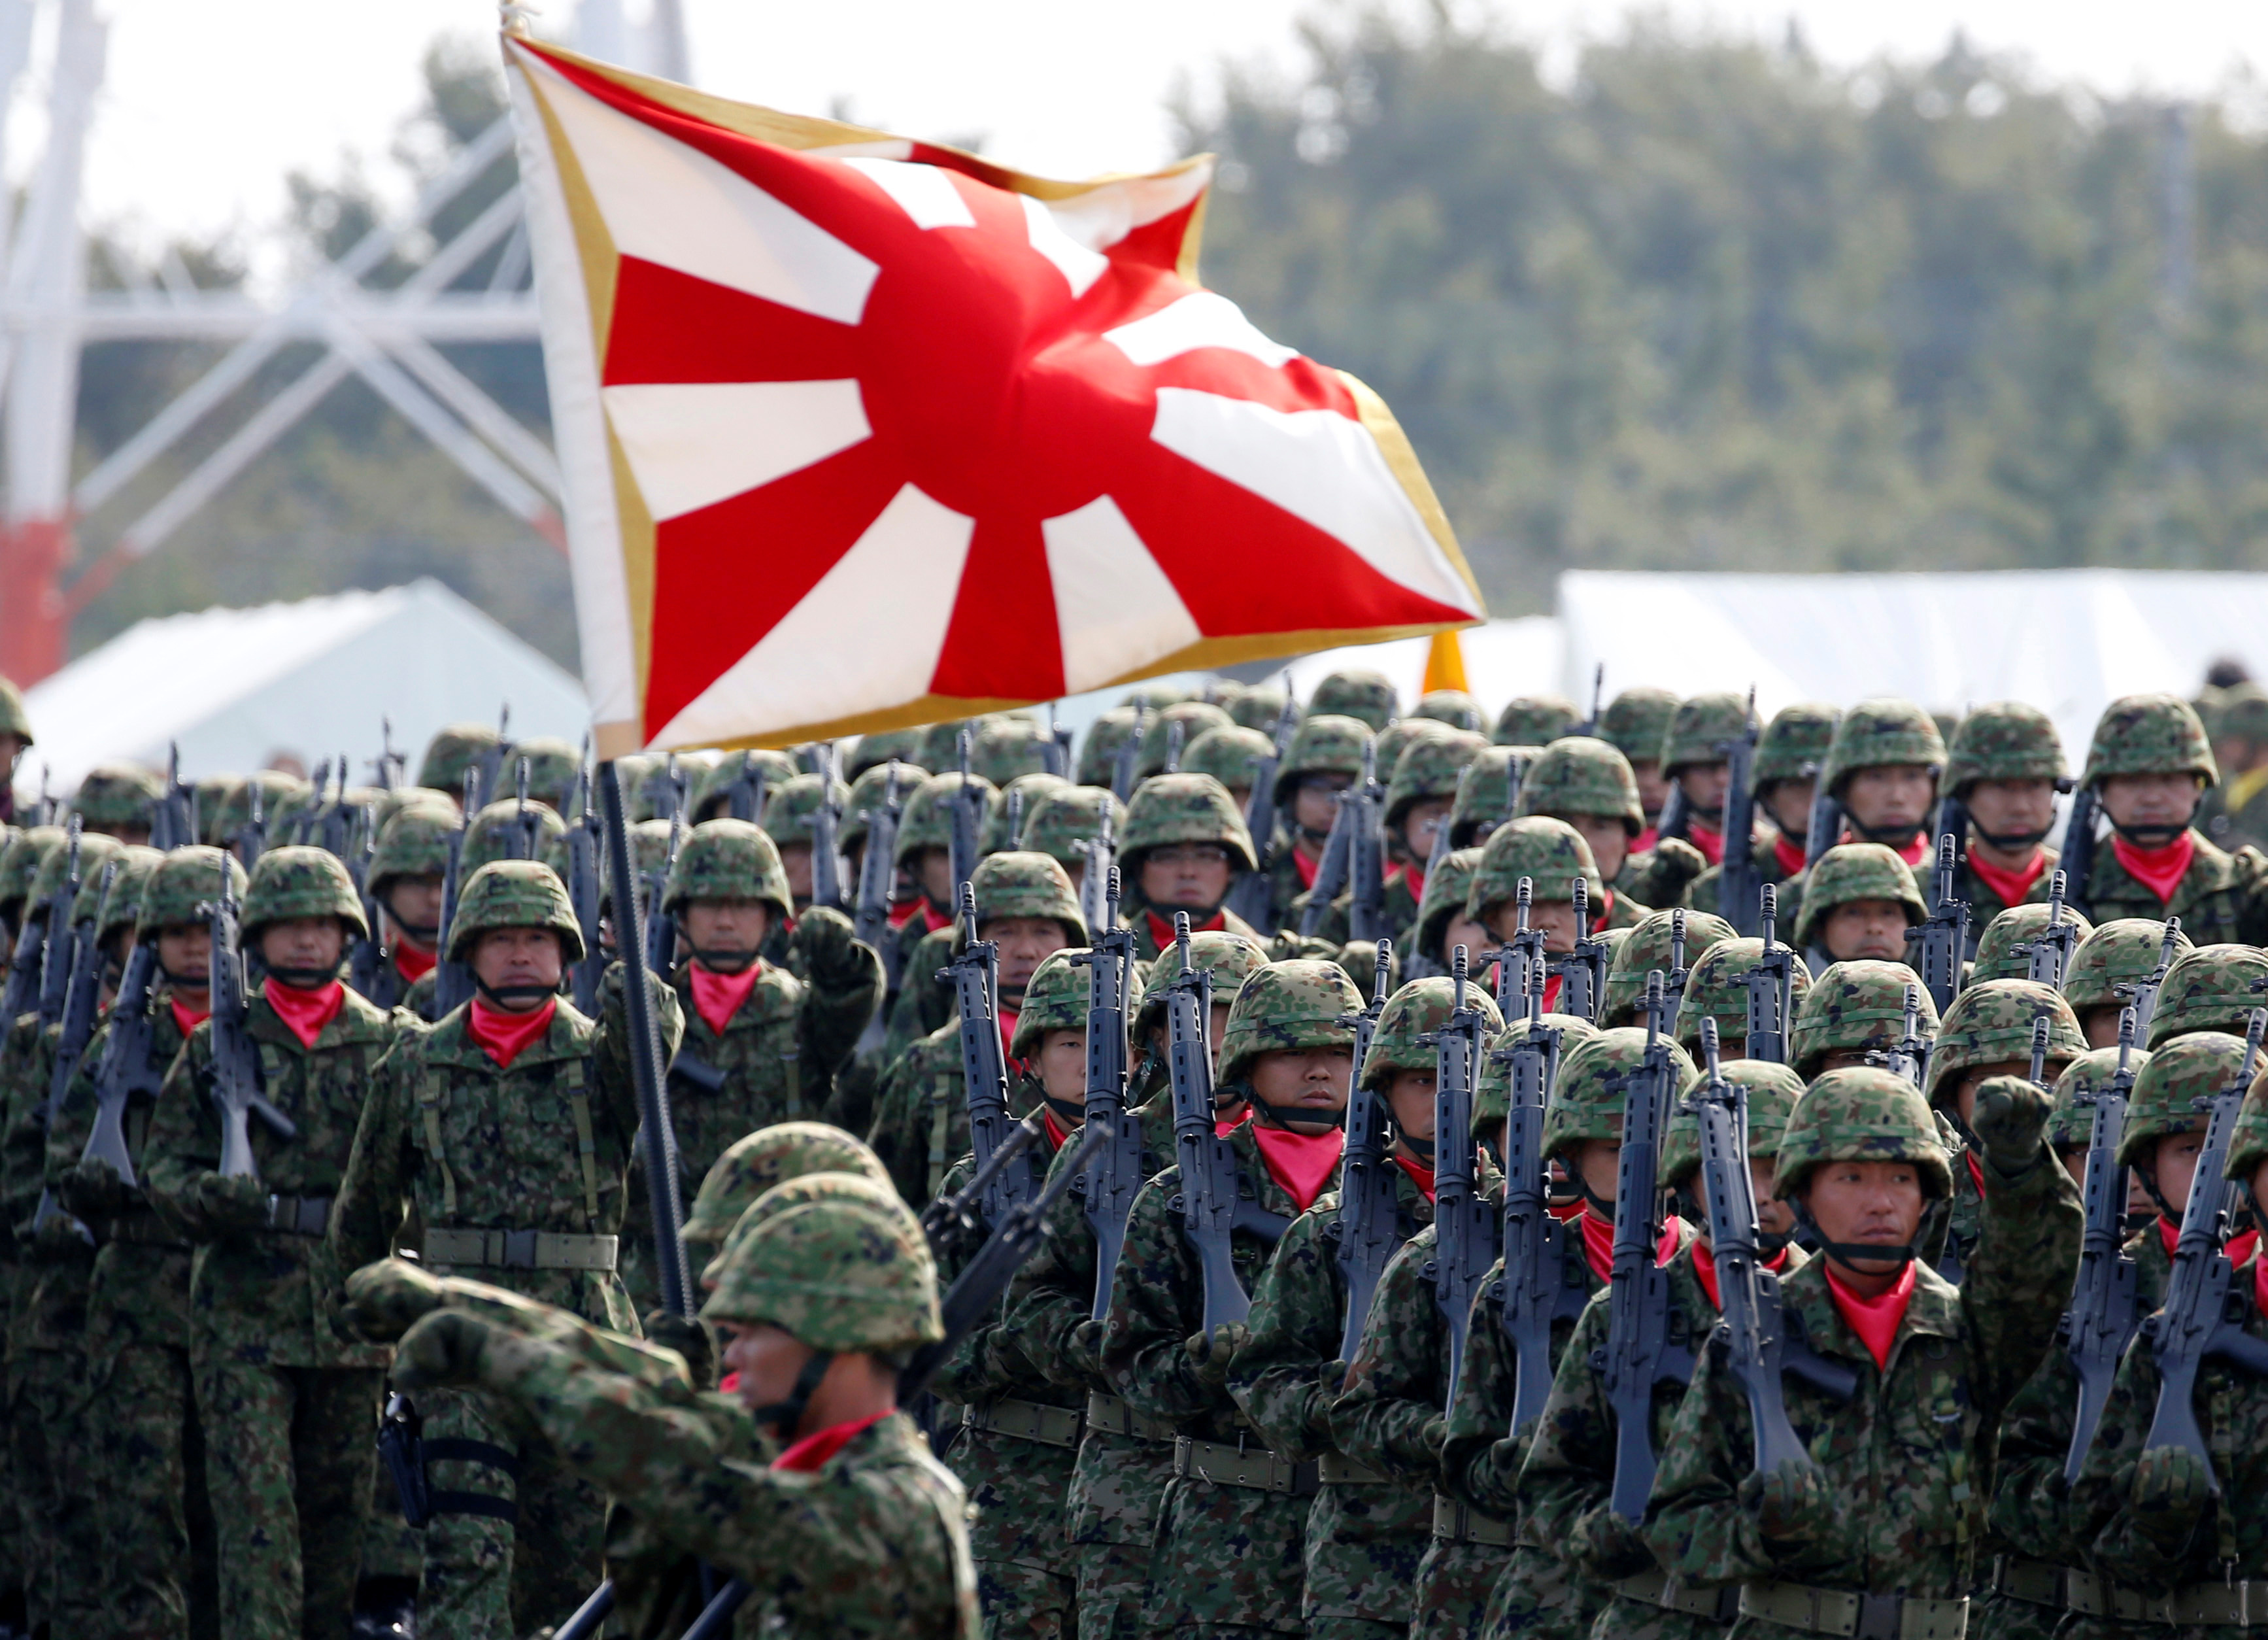 Japan Accelerates Its Defense Buildup | The National Interest